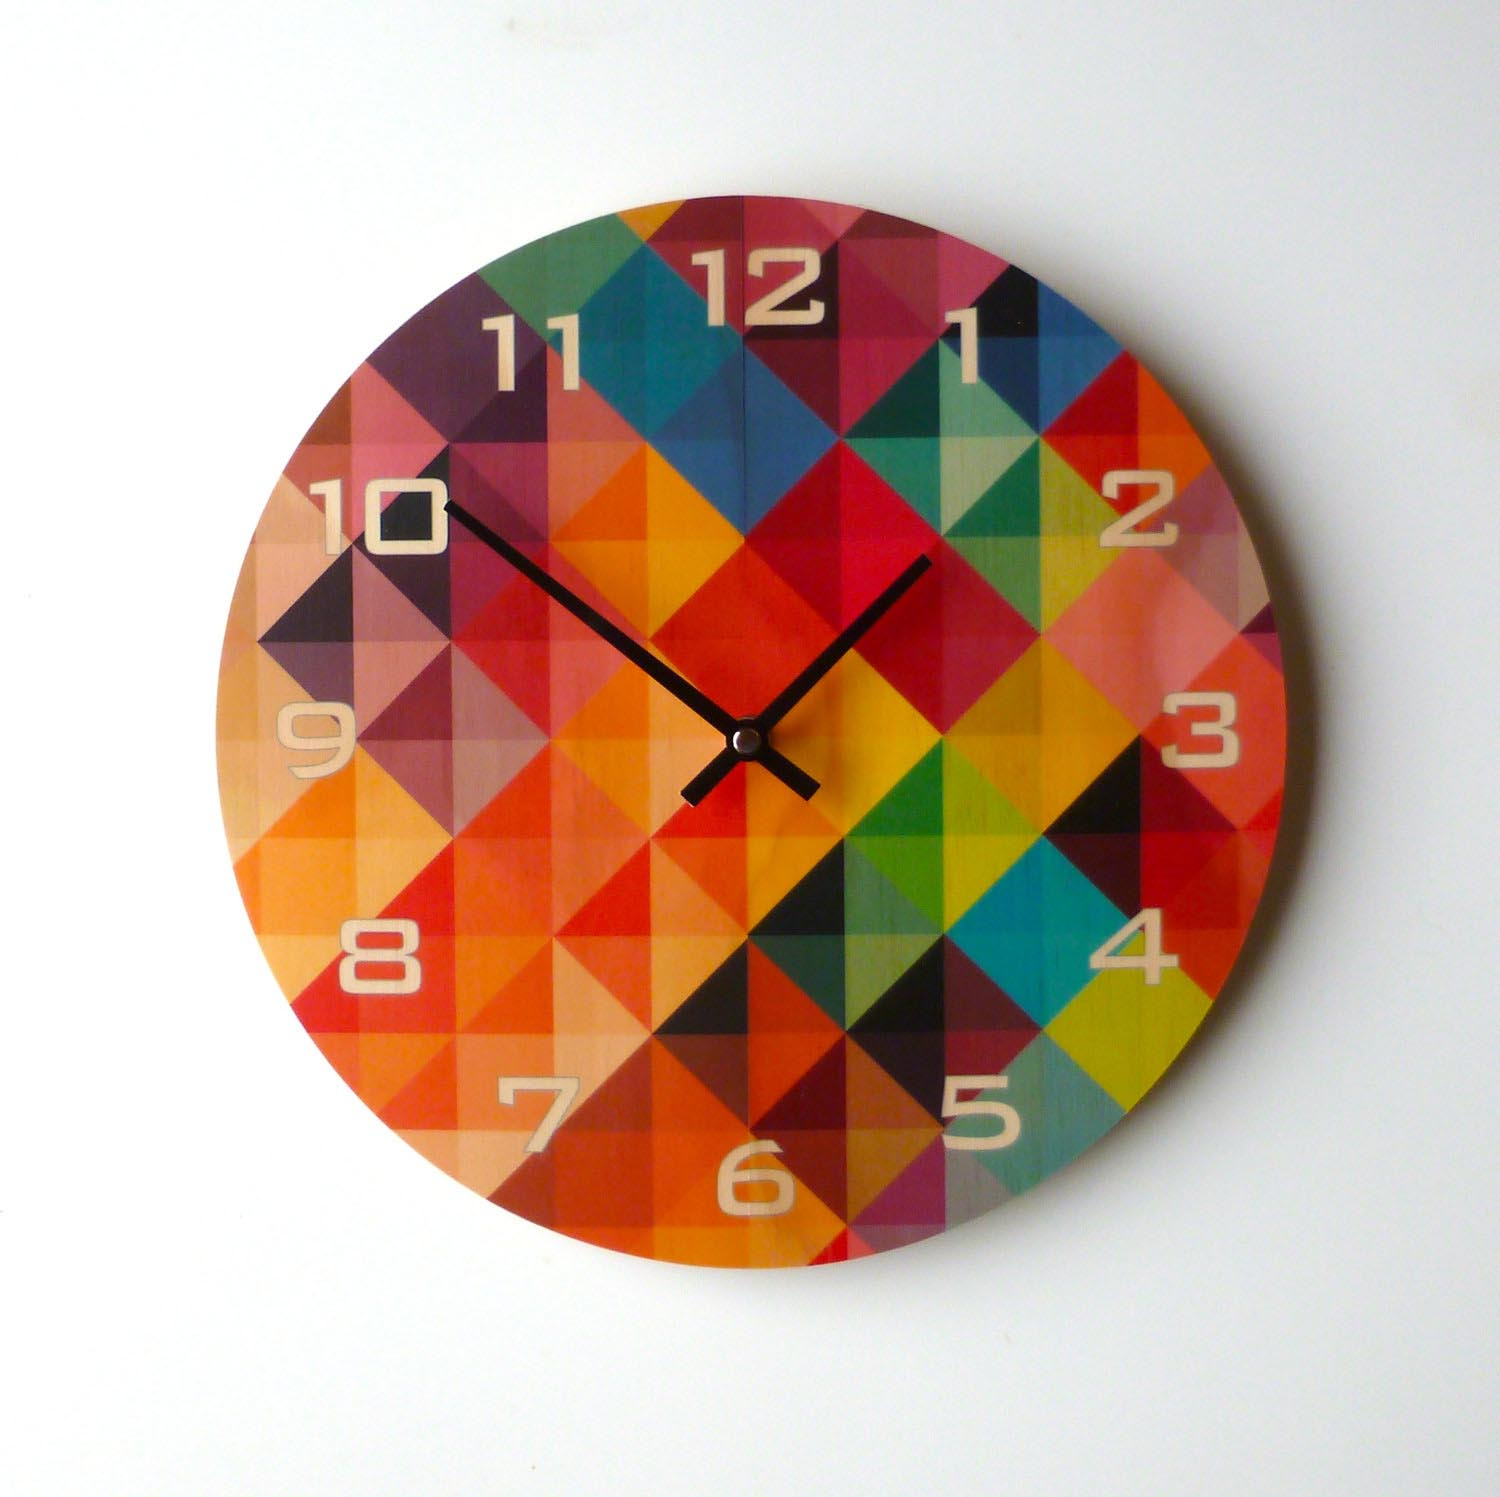 Cool Wall Clocks Indispensable Decoration Of Your Home Best Decor Things